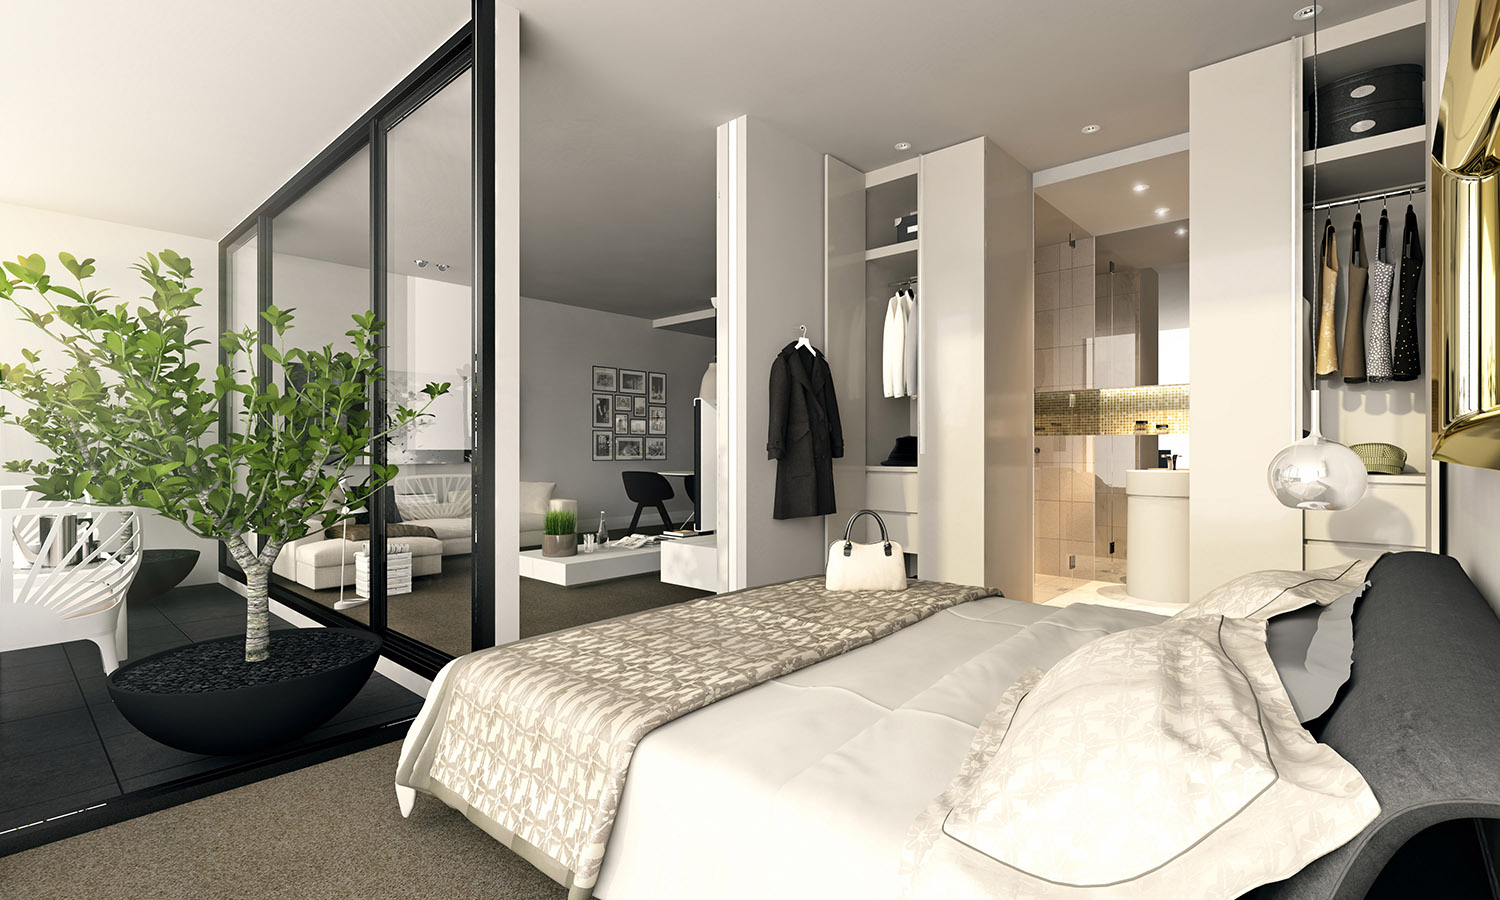 Studio apartment interiors inspiration for Studio bedroom ideas